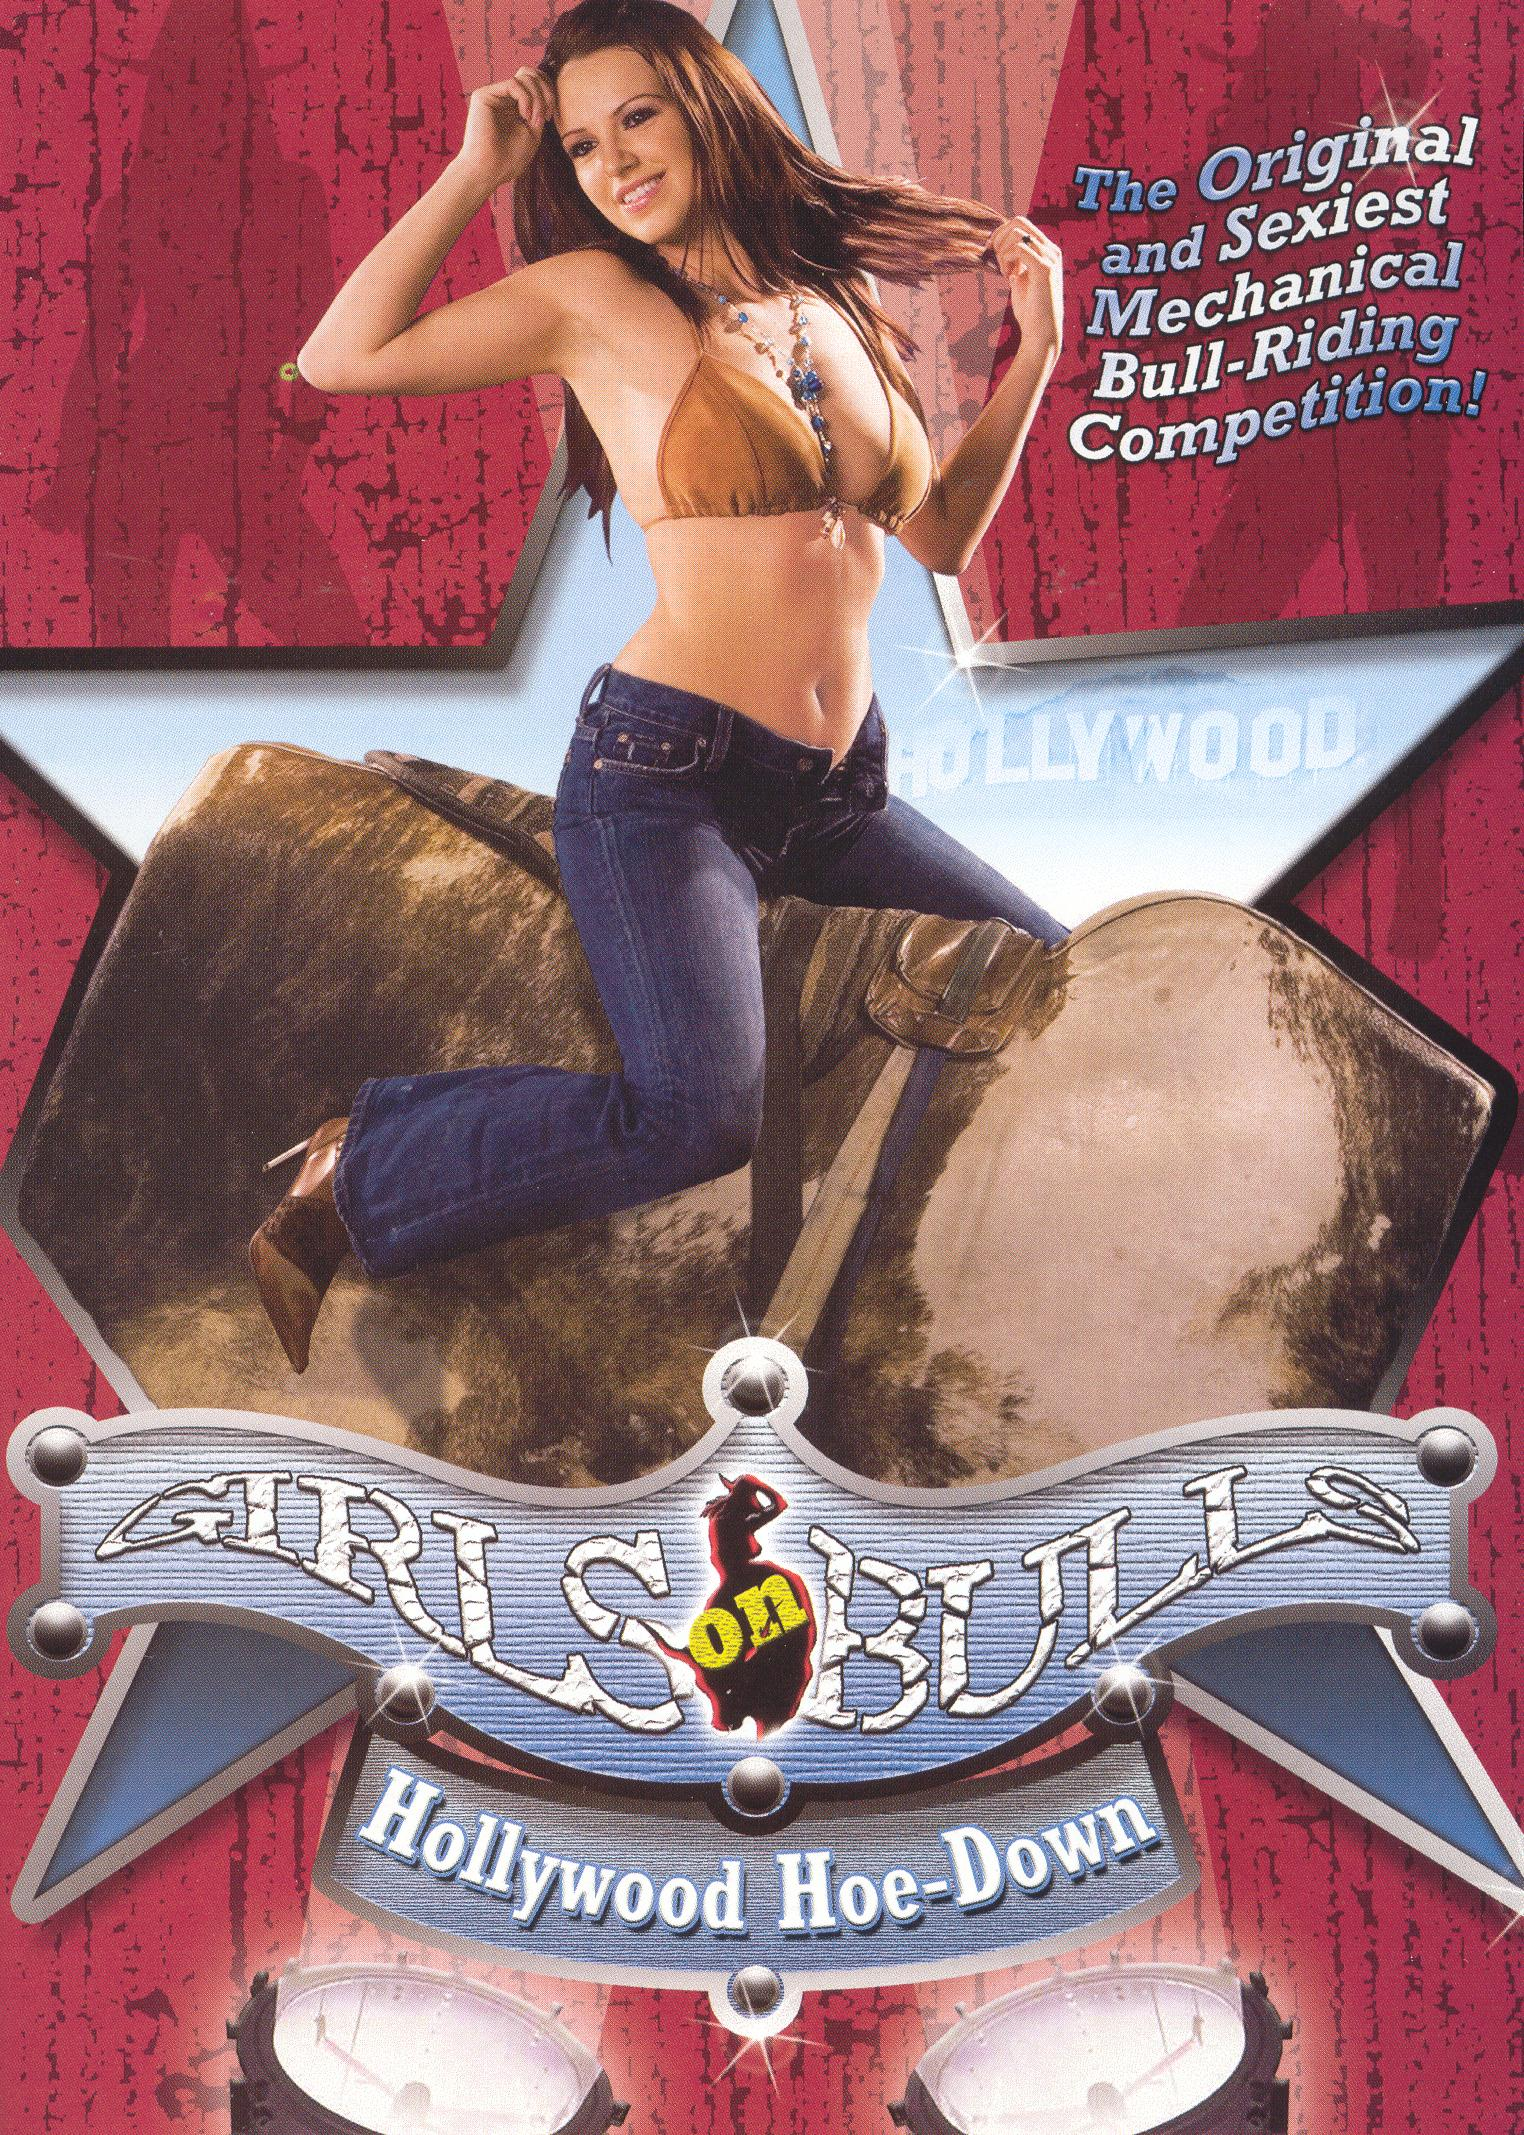 Girls on Bulls: Hollywood Hoe-Down